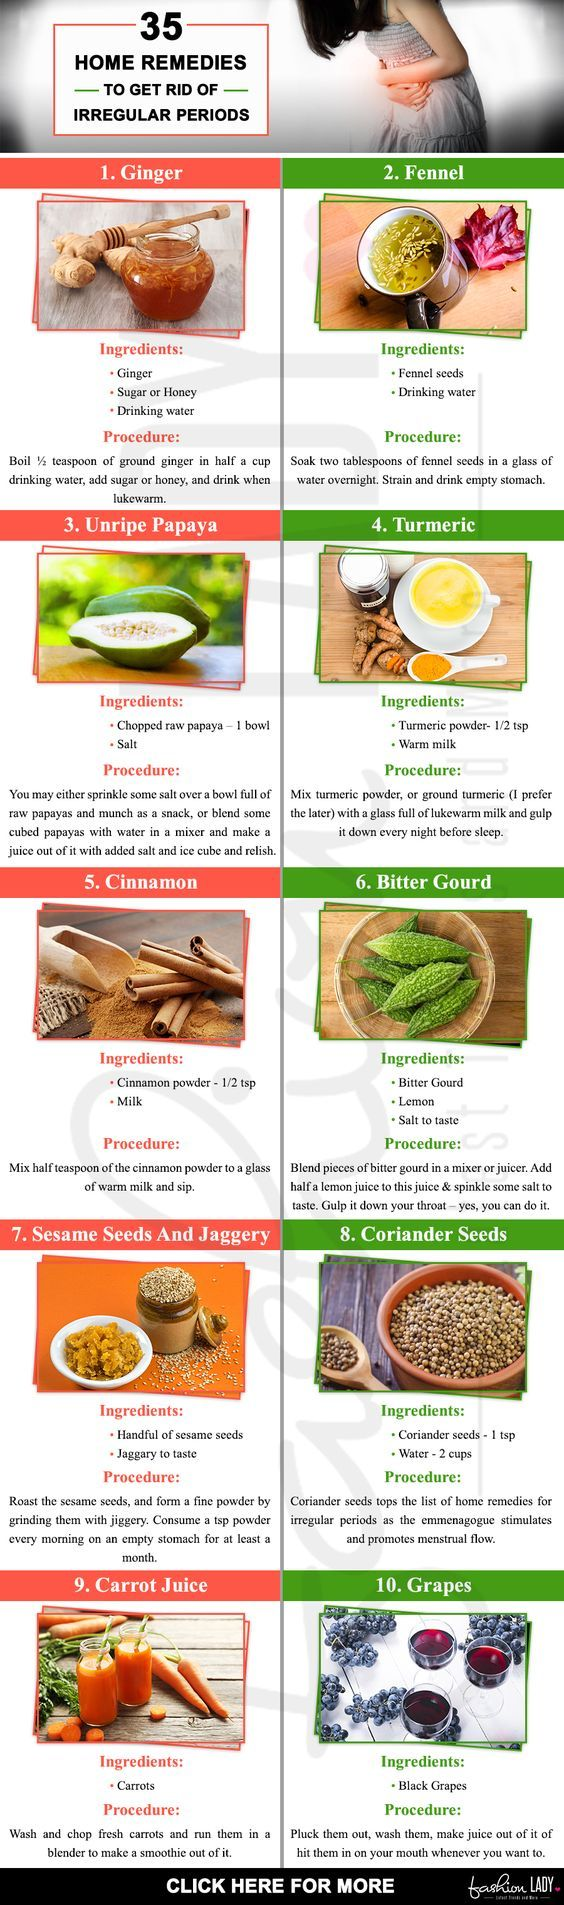 35 Home Remedies To Get Rid Of Irregular Periods | You Can